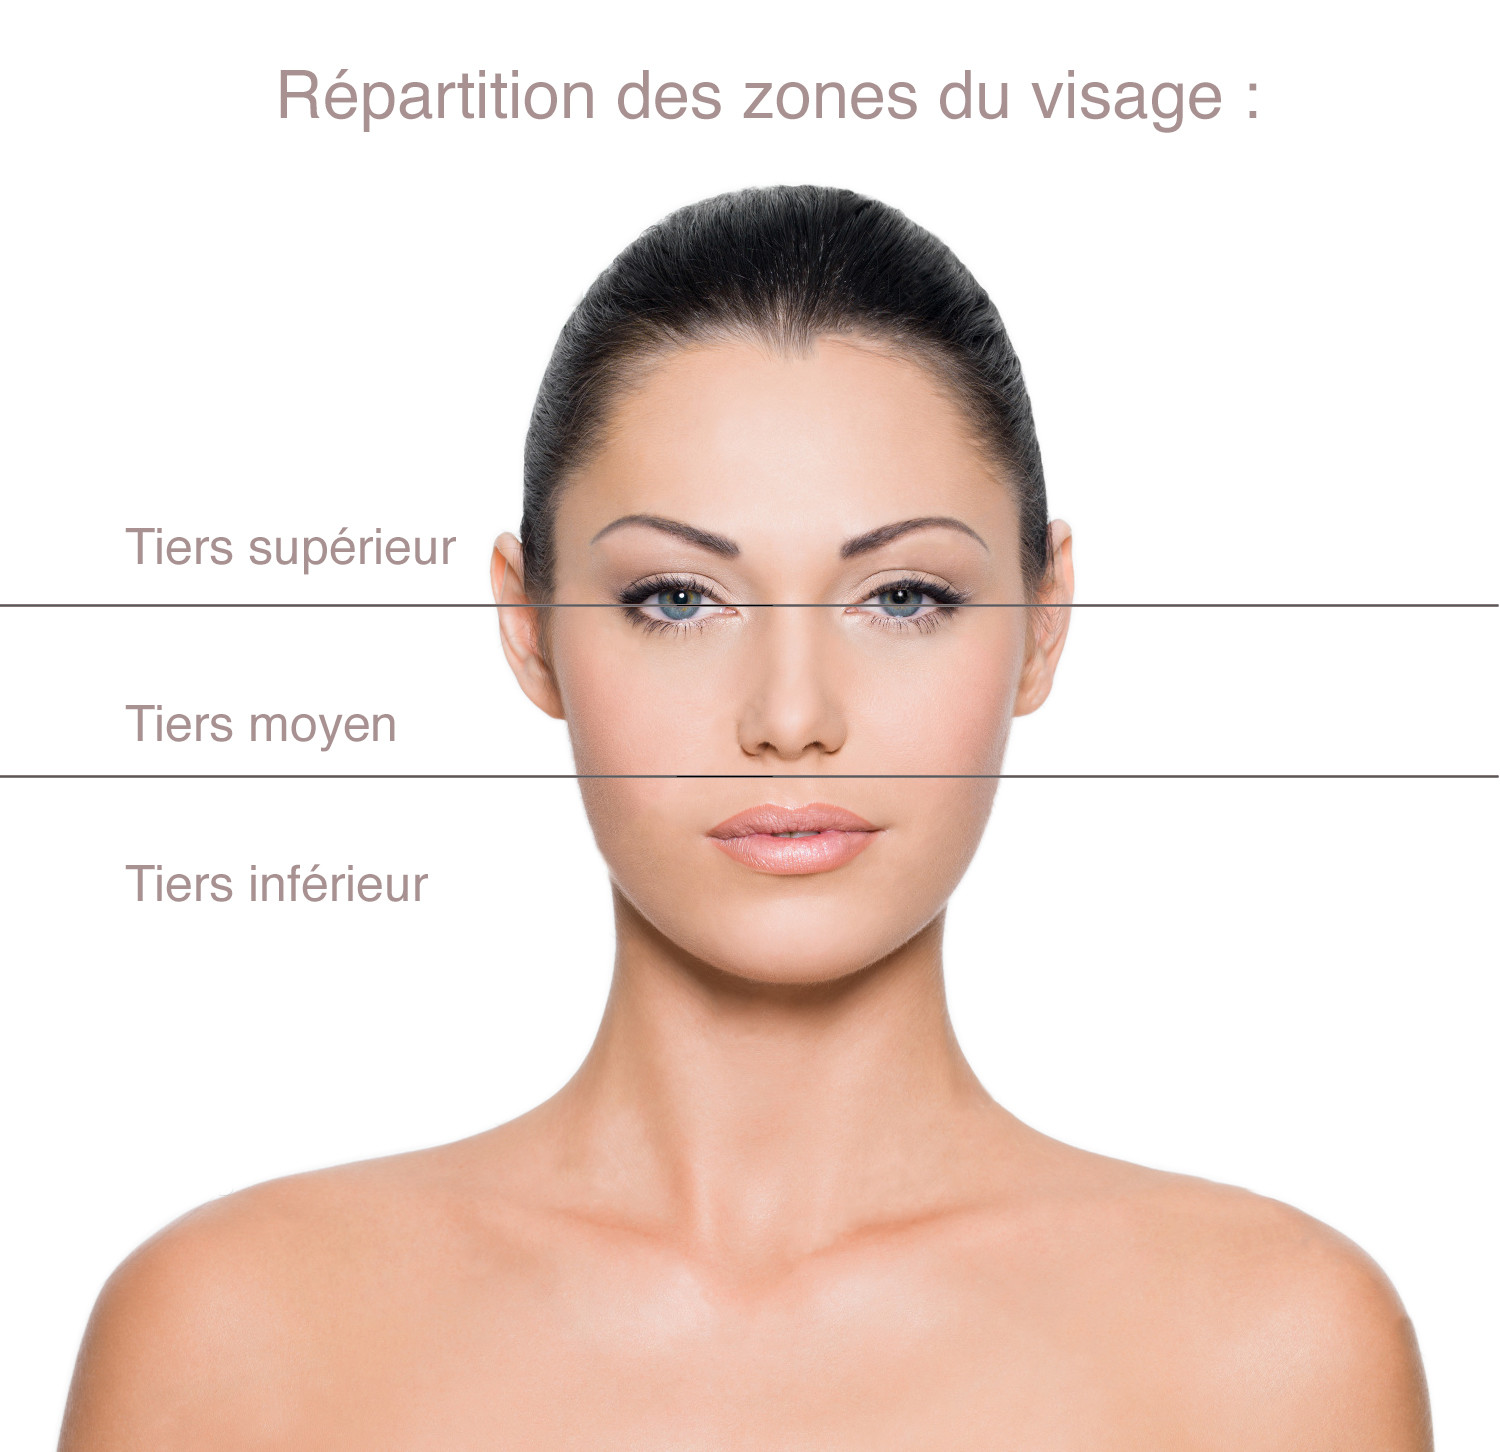 Répartition Visage